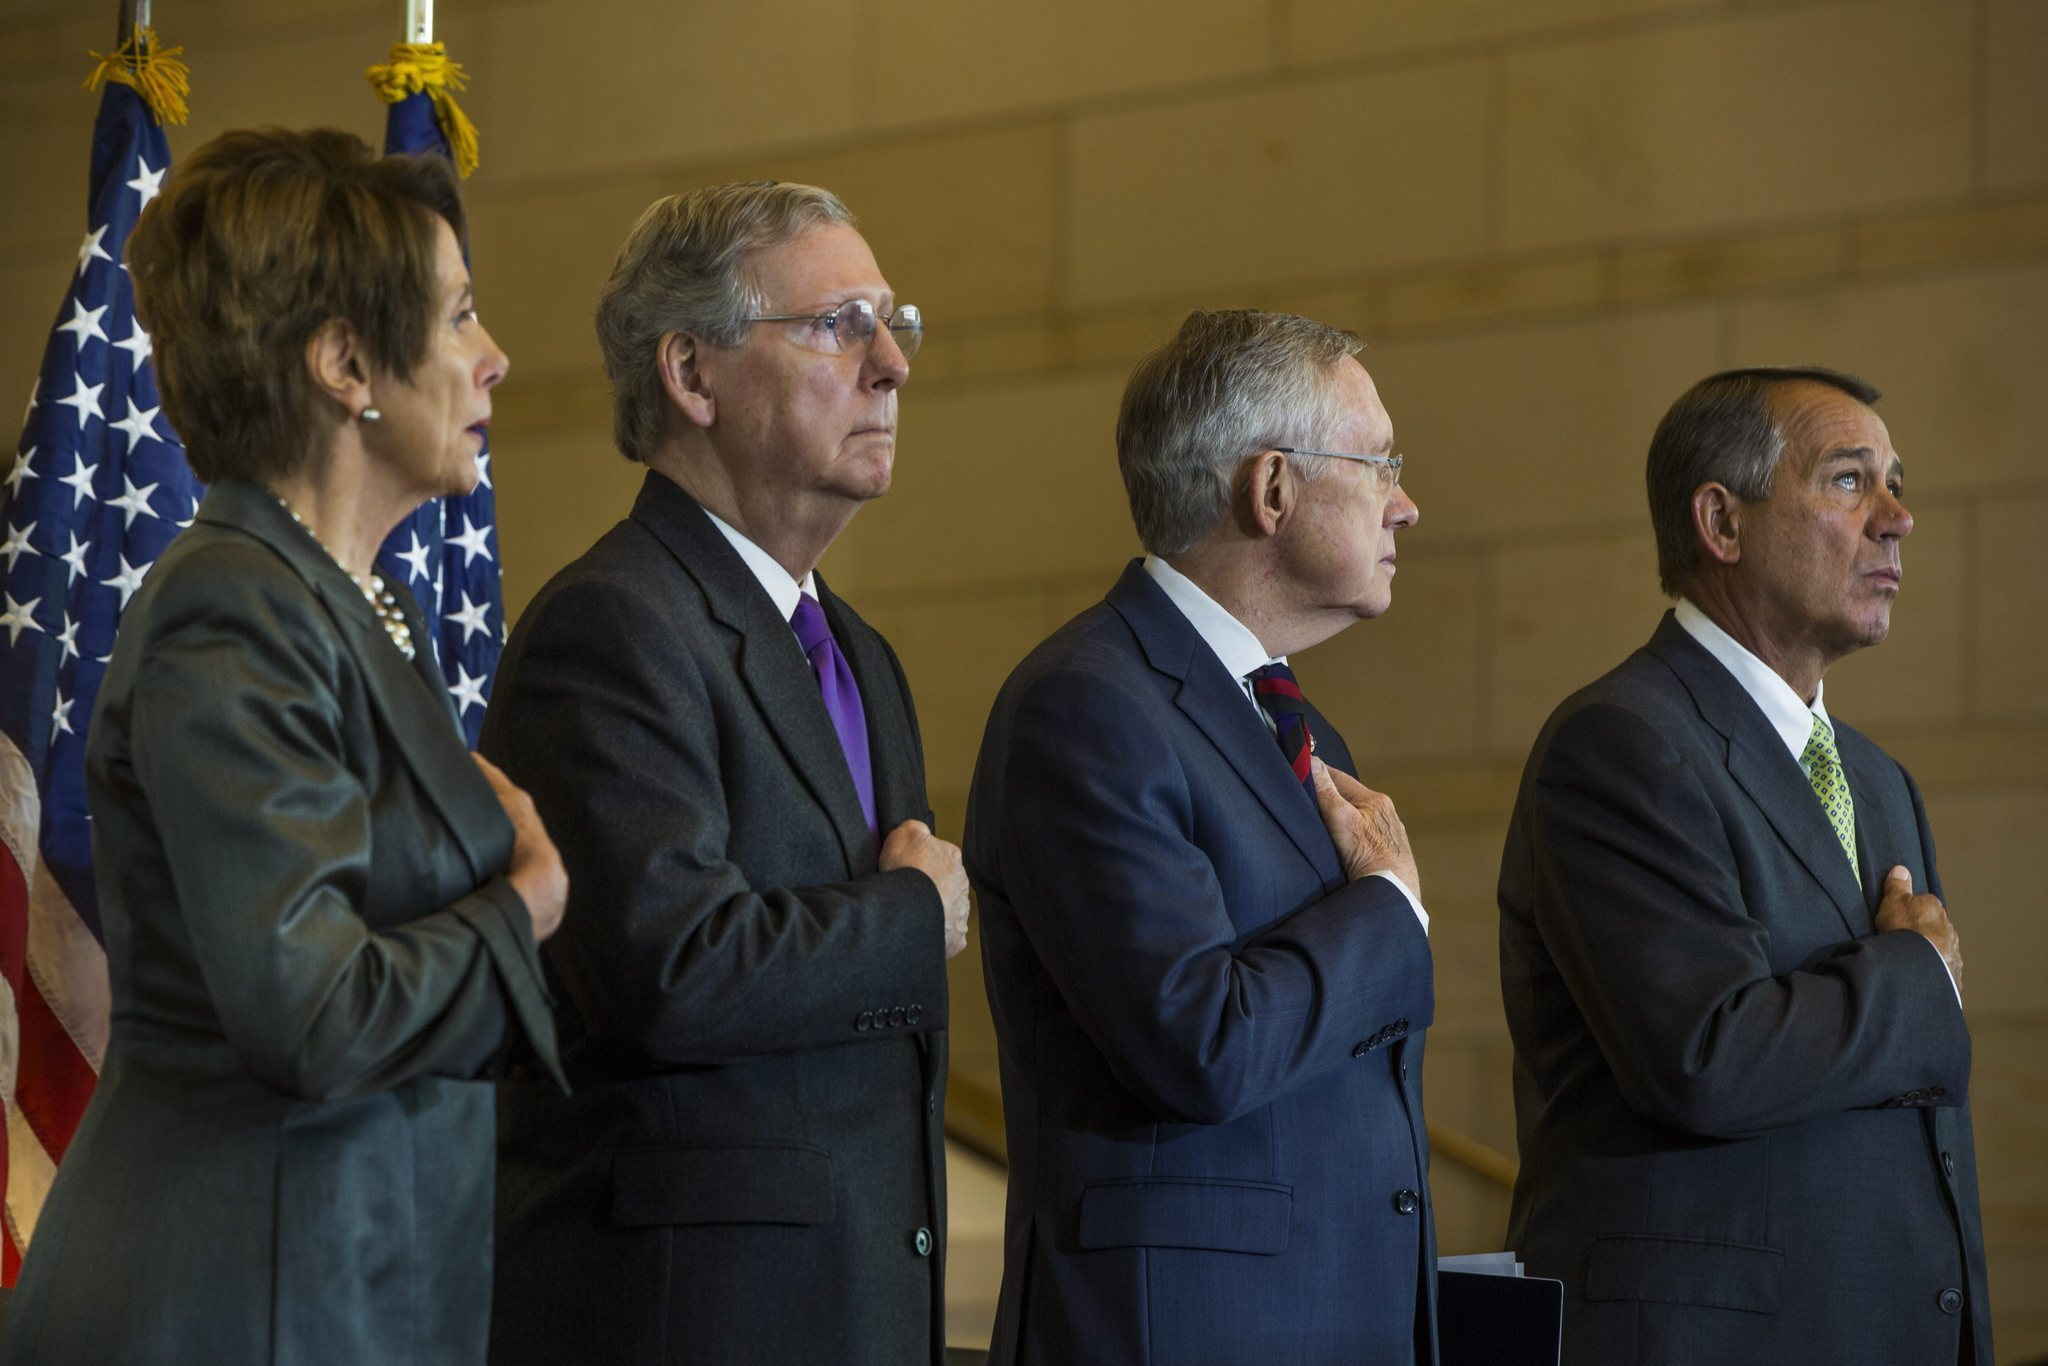 2014 politics: A look ahead - <b>Congressional elections</b>